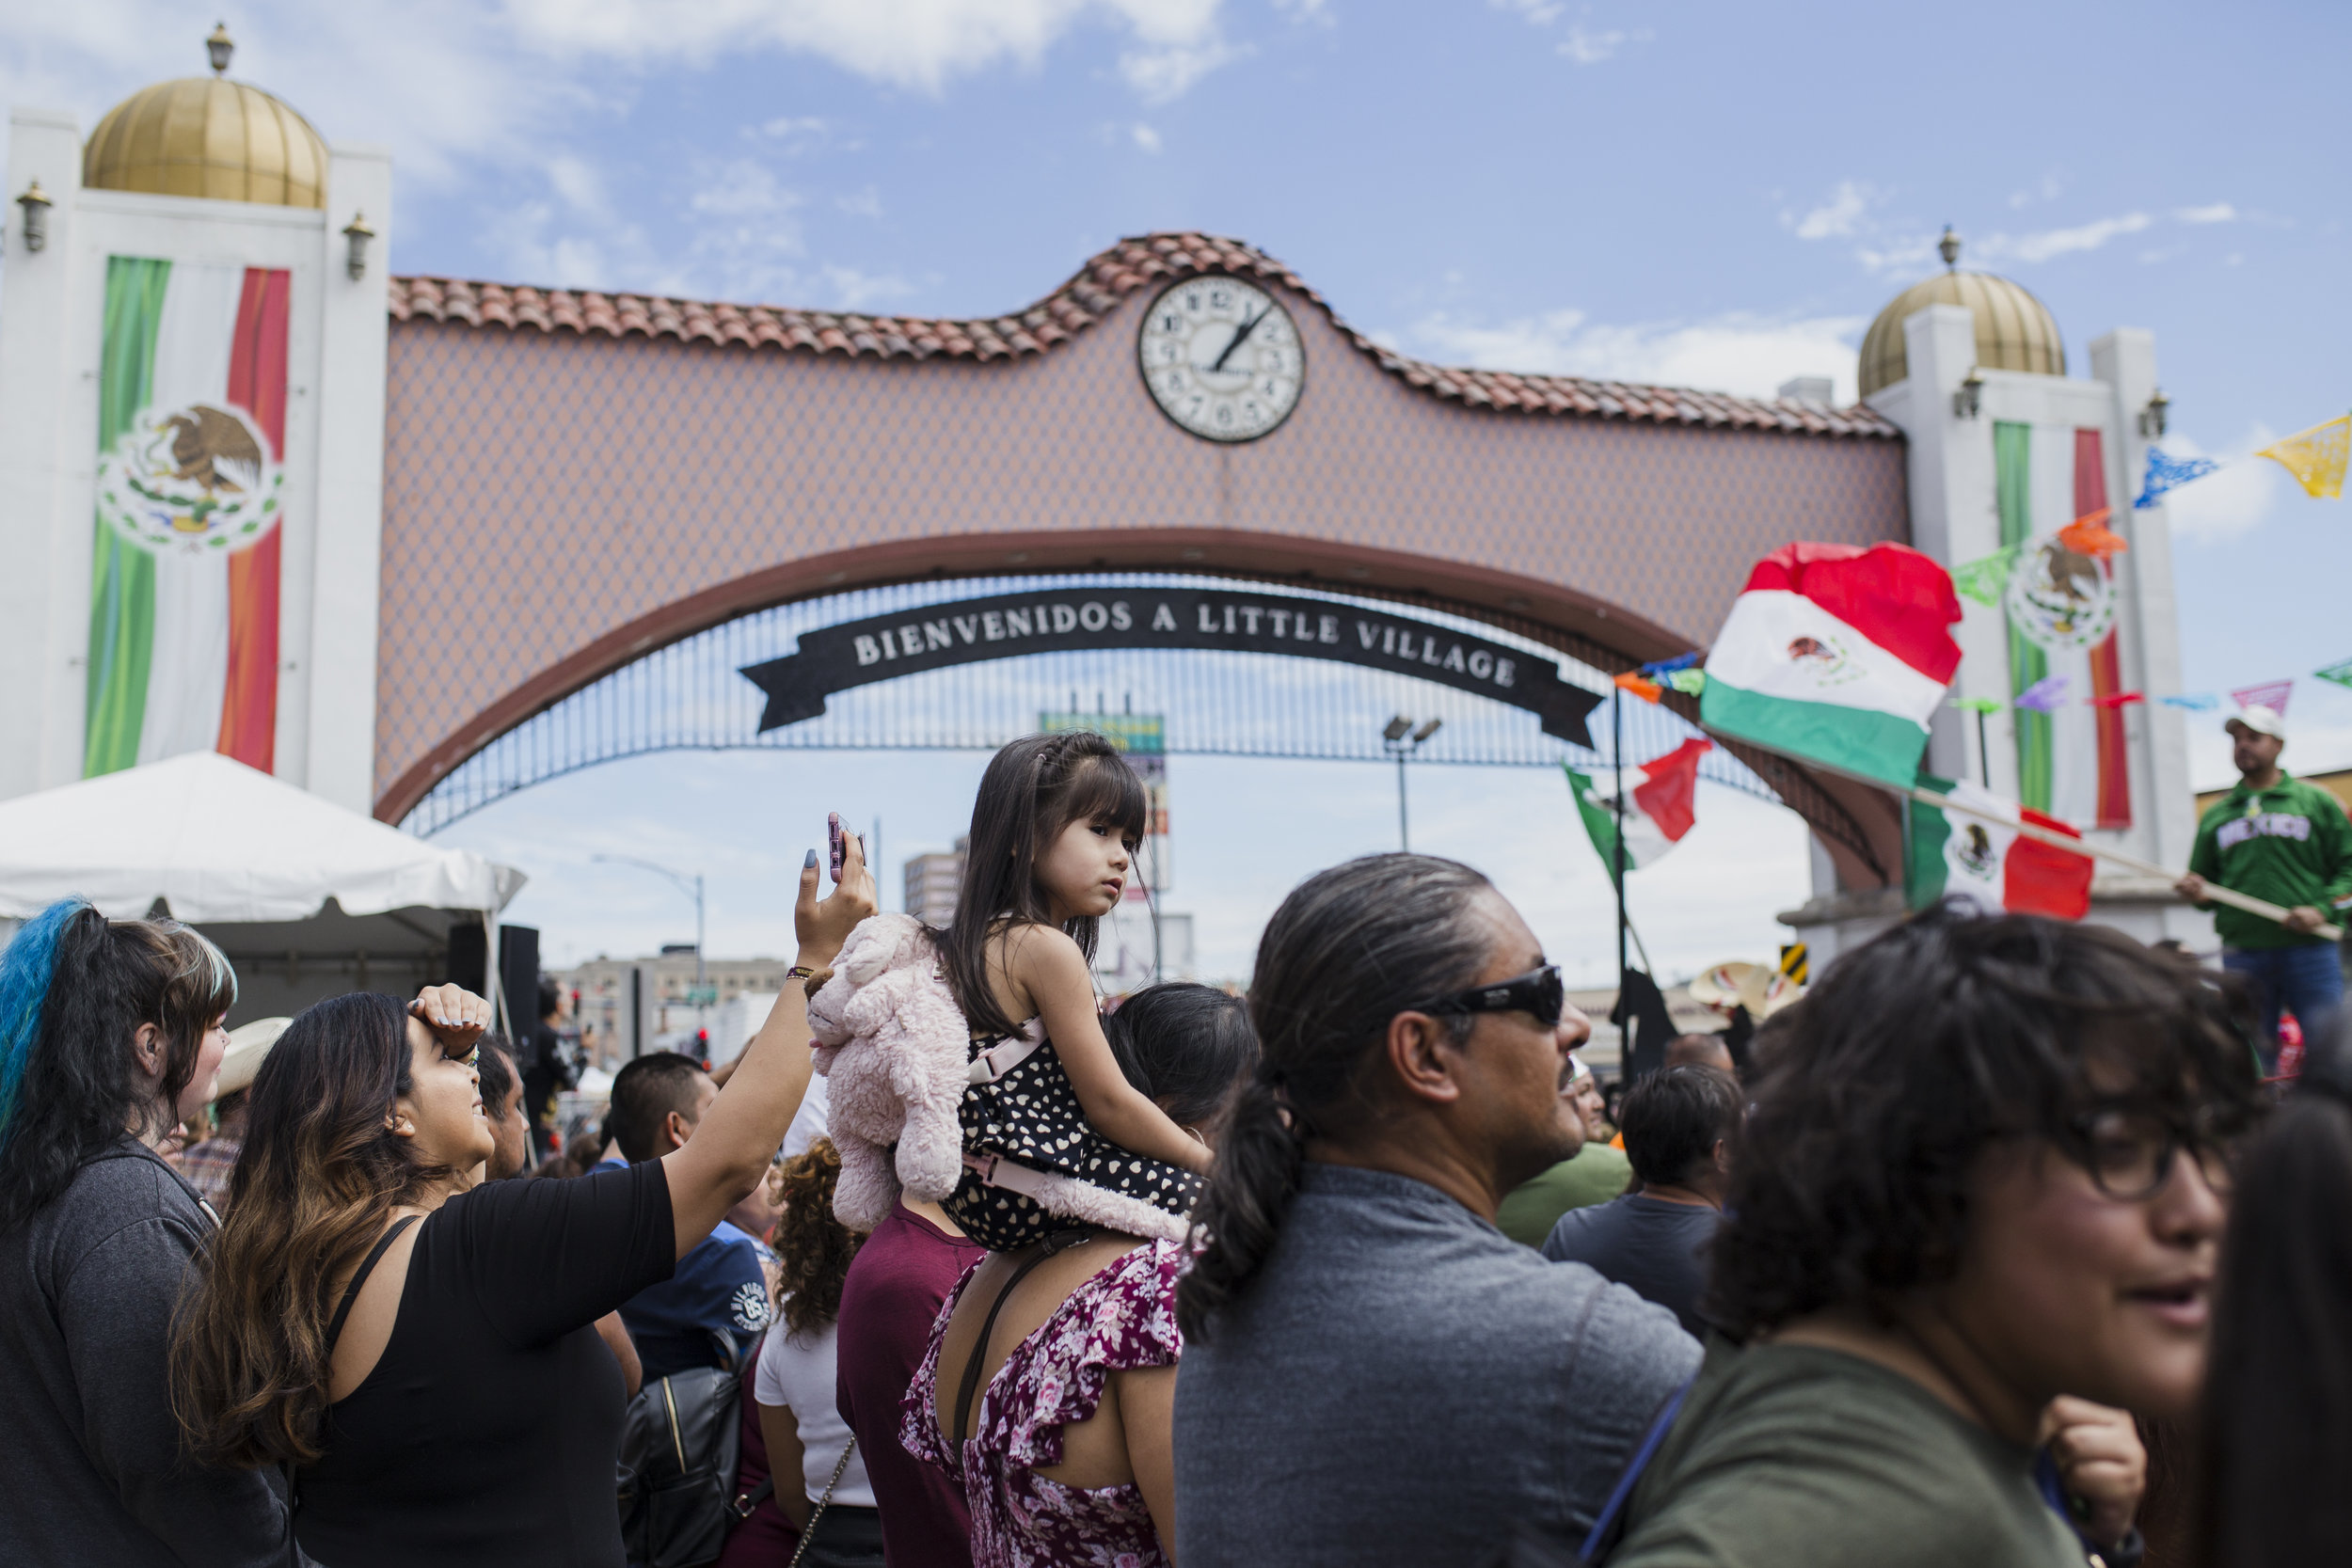 Thousands of people flocked to 26th Street to watch the Mexican Independence Day Parade.